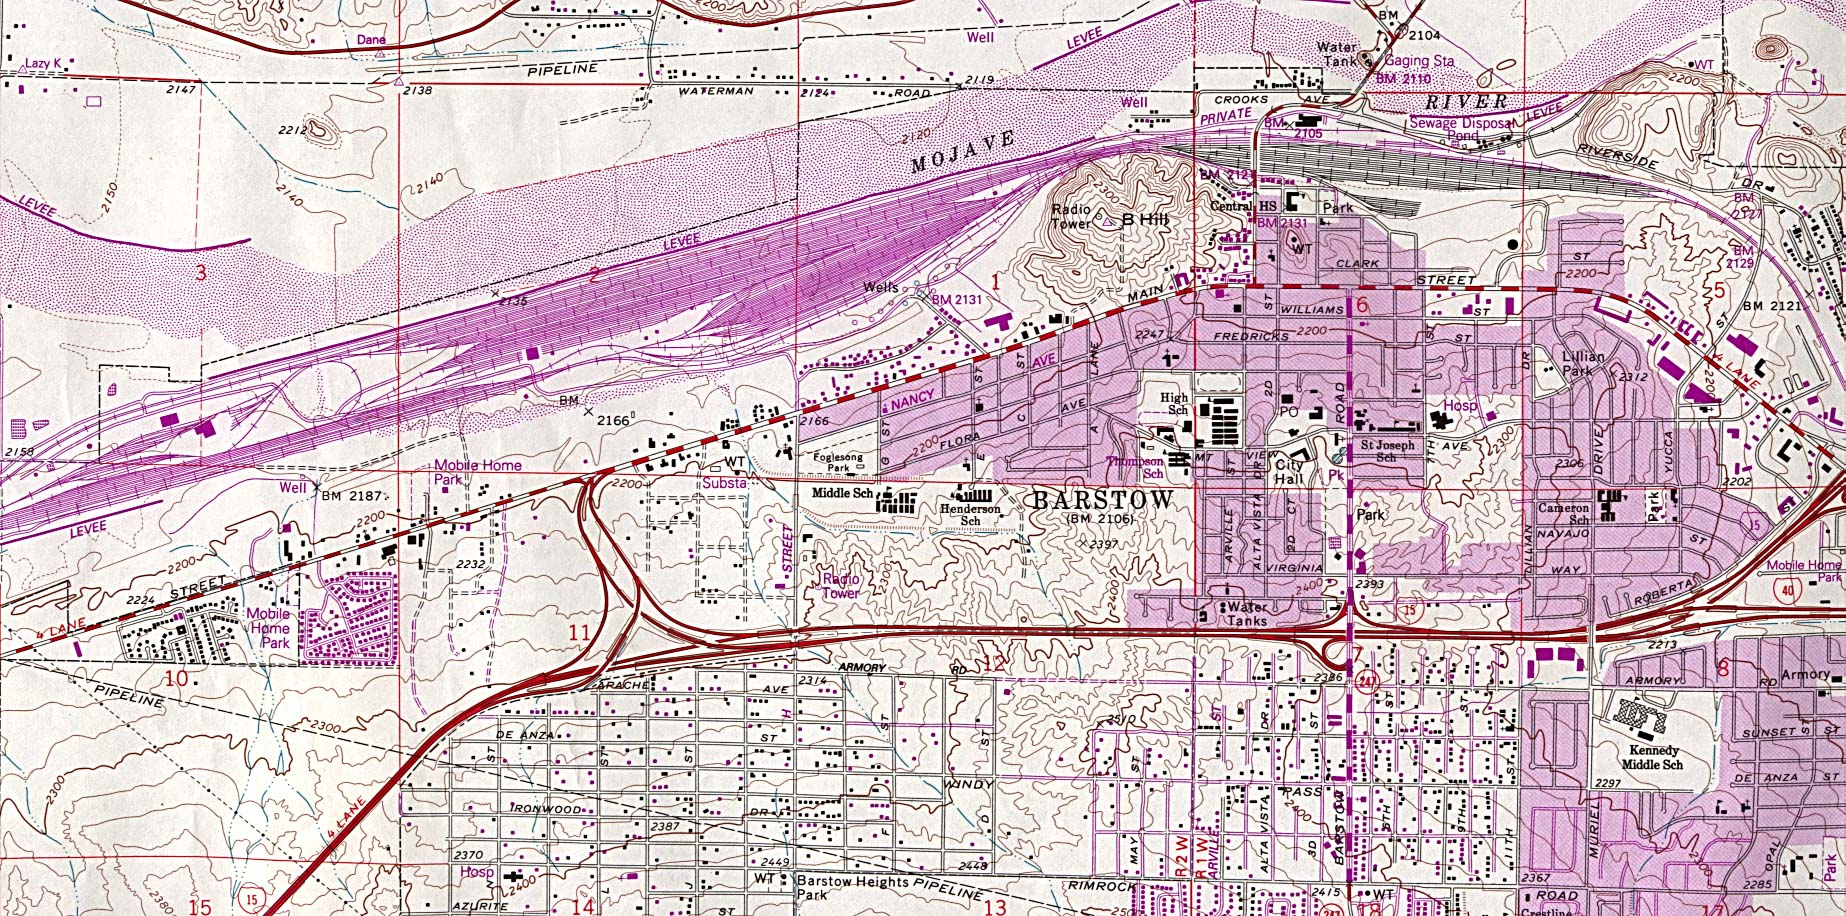 Barstow Topographic City Map, California, United States